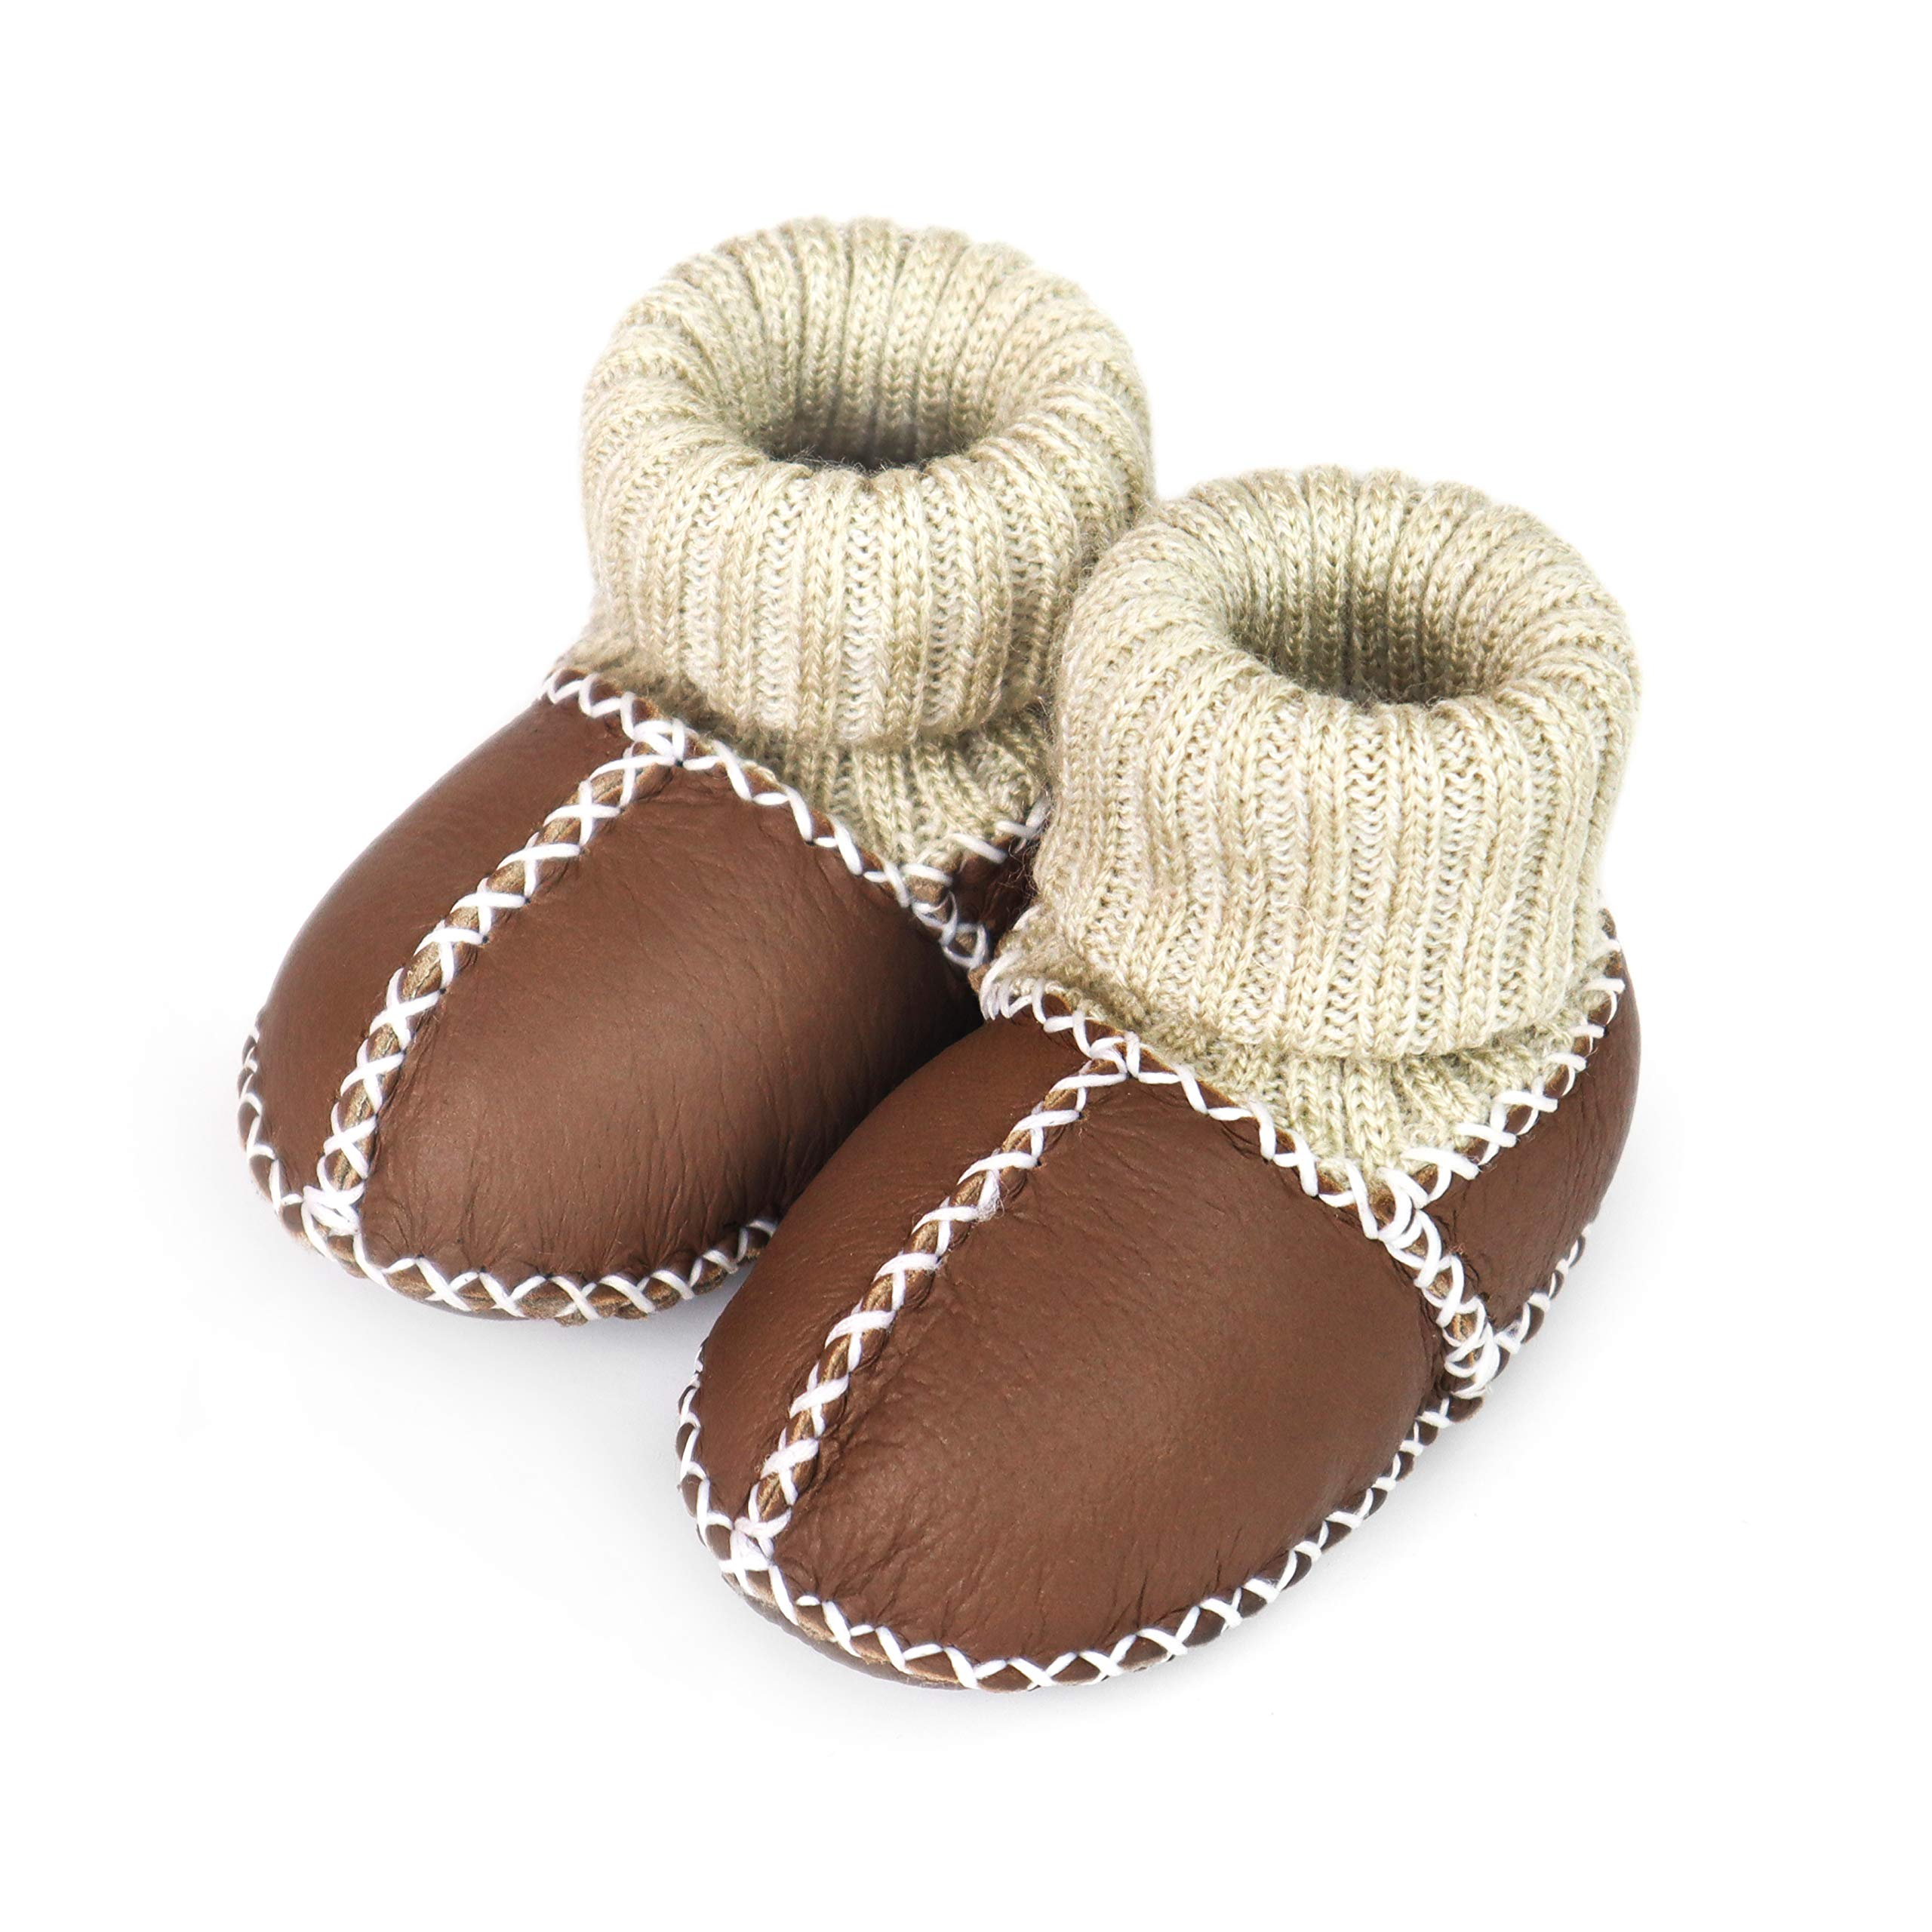 Pikababy Baby Moccasin Booties, Handmade Genuine Leather, Indoor Soft Sole Warm Shoes for Infant Baby Boys and Girls